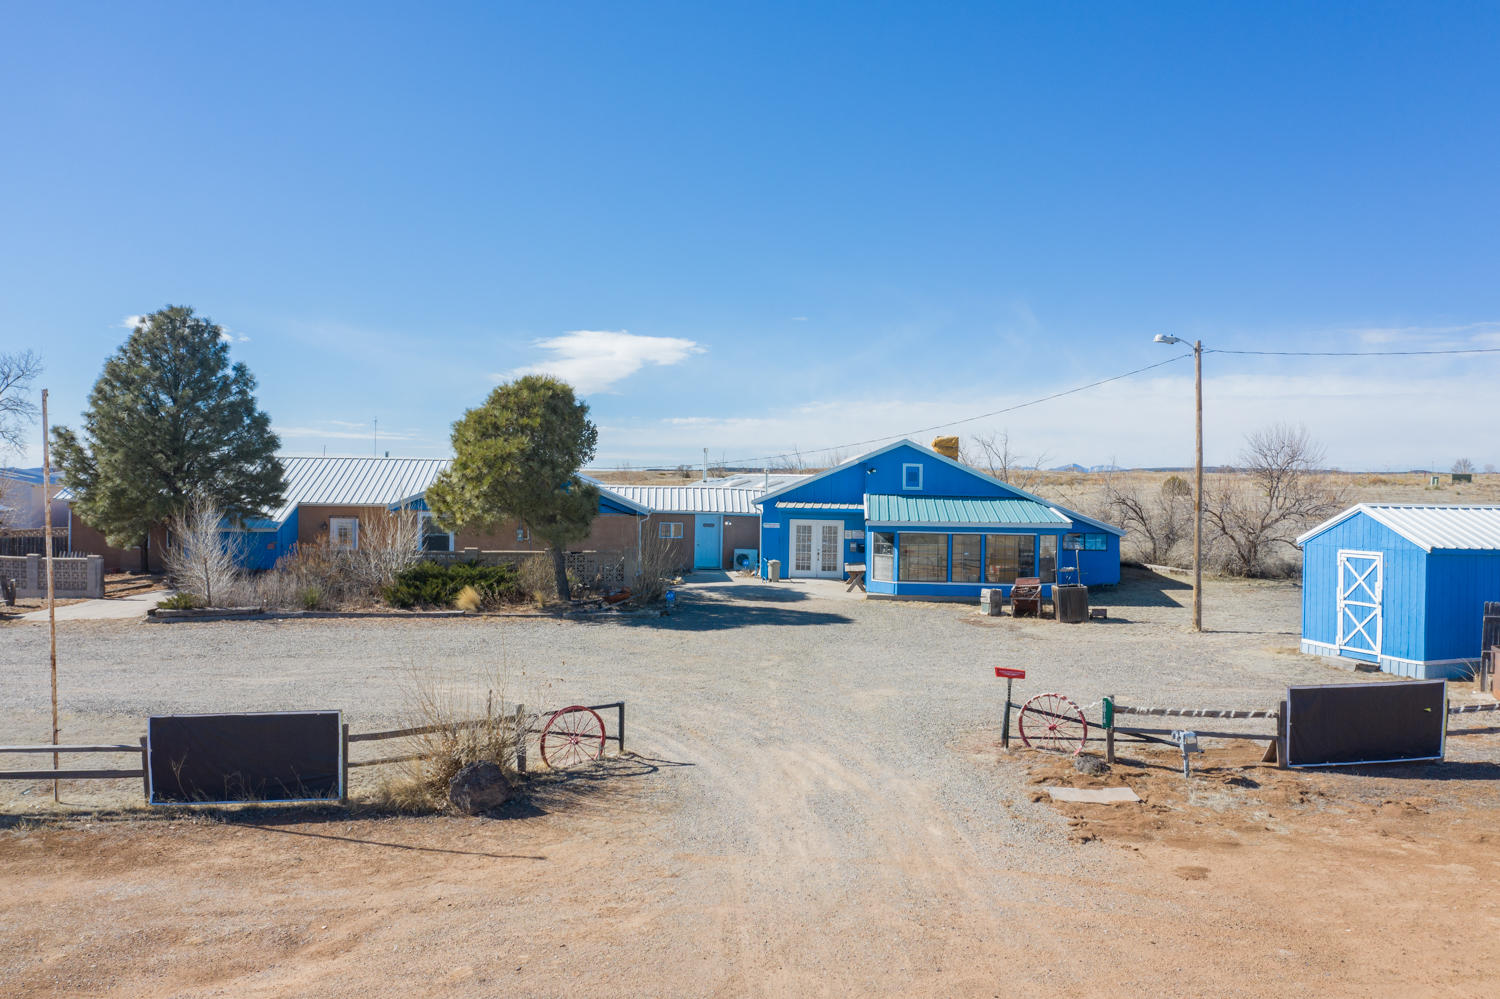 3614 US RT 66 Loop, Moriarty, NM 87035 - Moriarty, NM real estate listing